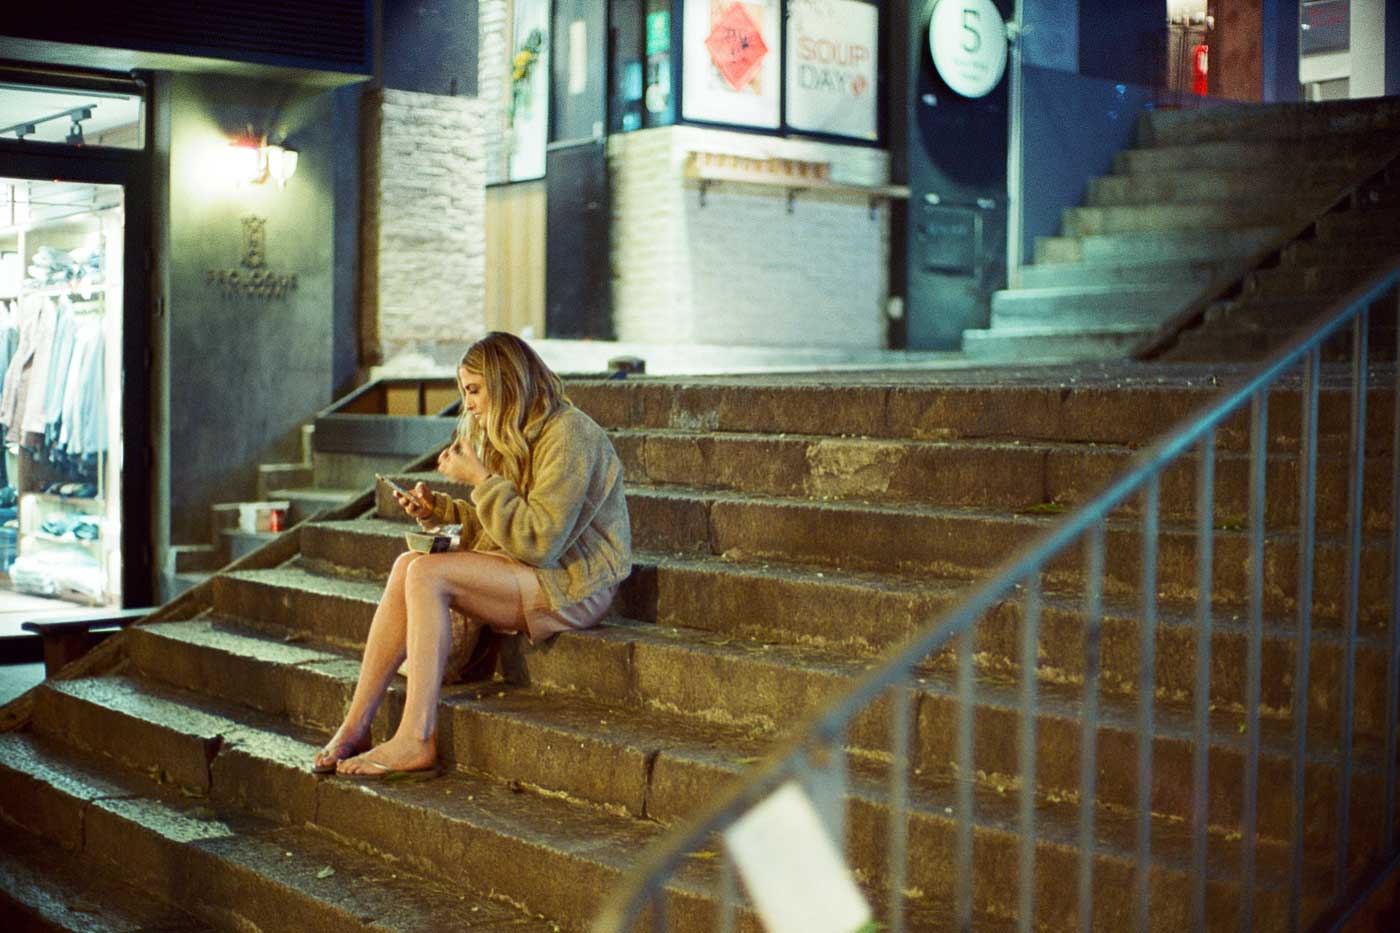 analog-film-review-kodak-vision3-vision-3-5219-7219-500T-800T-tungsten-photography-hk-night-central-near-soho-girl-sitting-there-noctilux-50mm-f1.0-f1-e58-v1